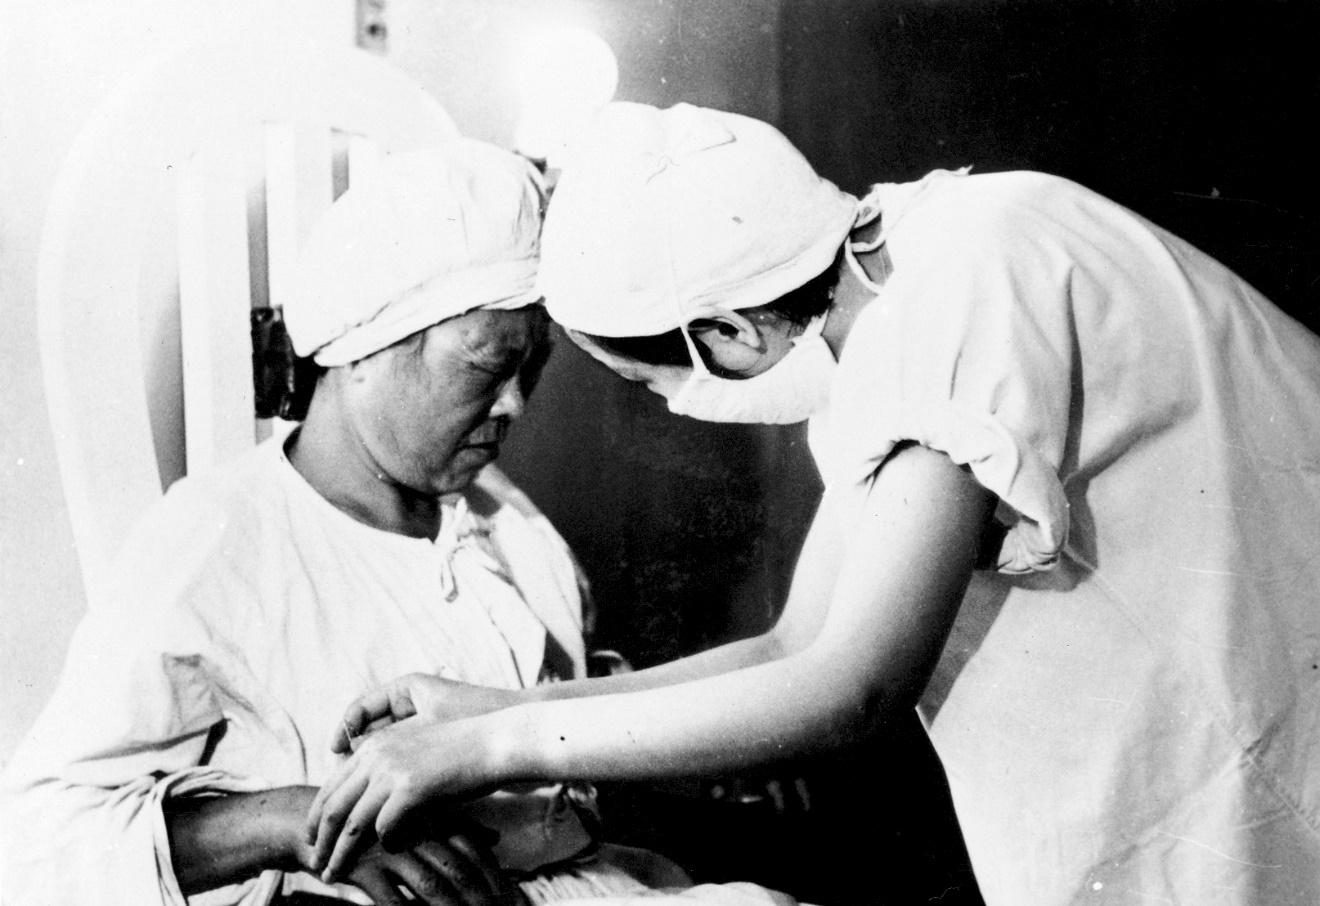 First case of acupunctura anesthesia surgery in China in 1958)